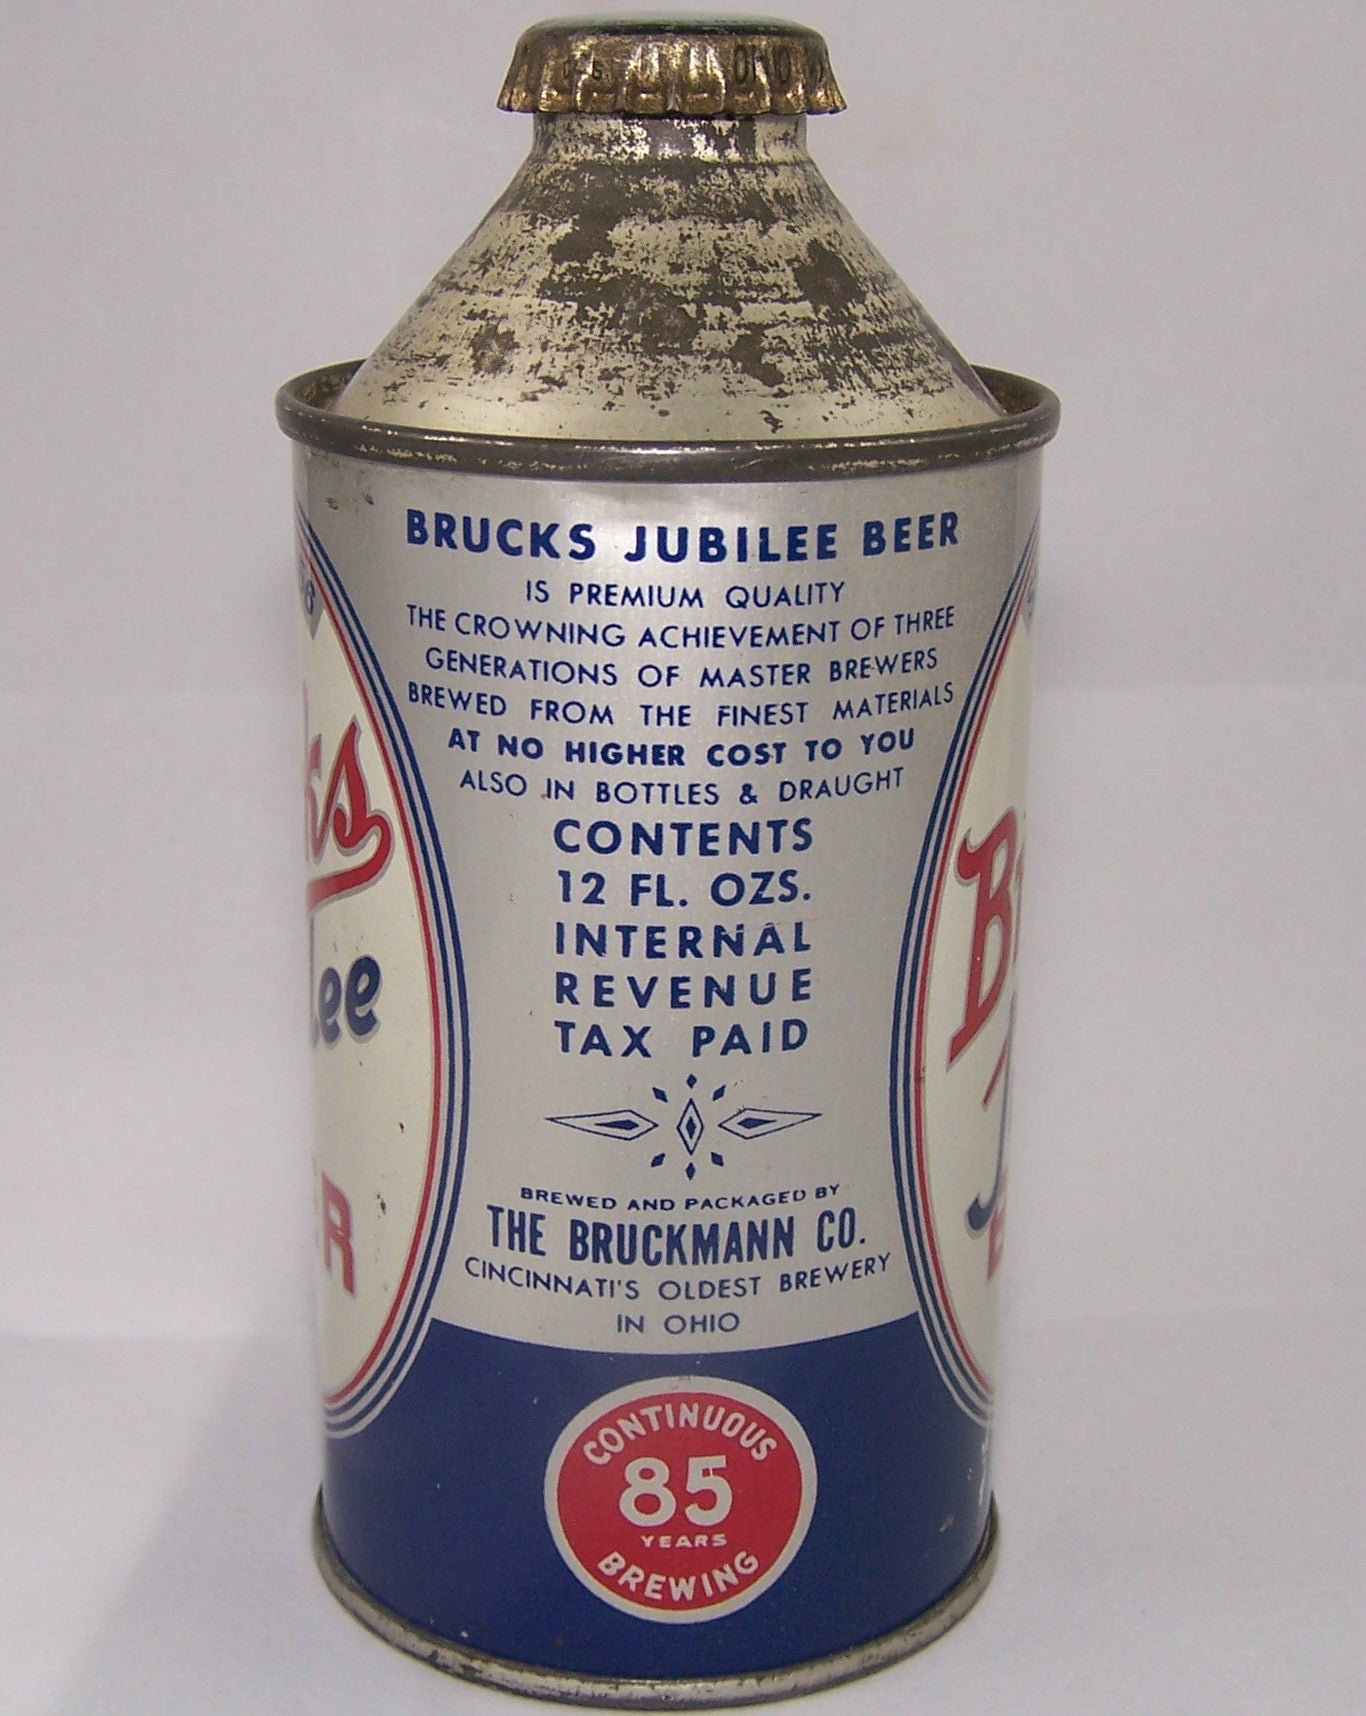 Brucks Jubilee Beer, USBC 154-28, Grade 1 to 1/1+ Sold on 4/1/15